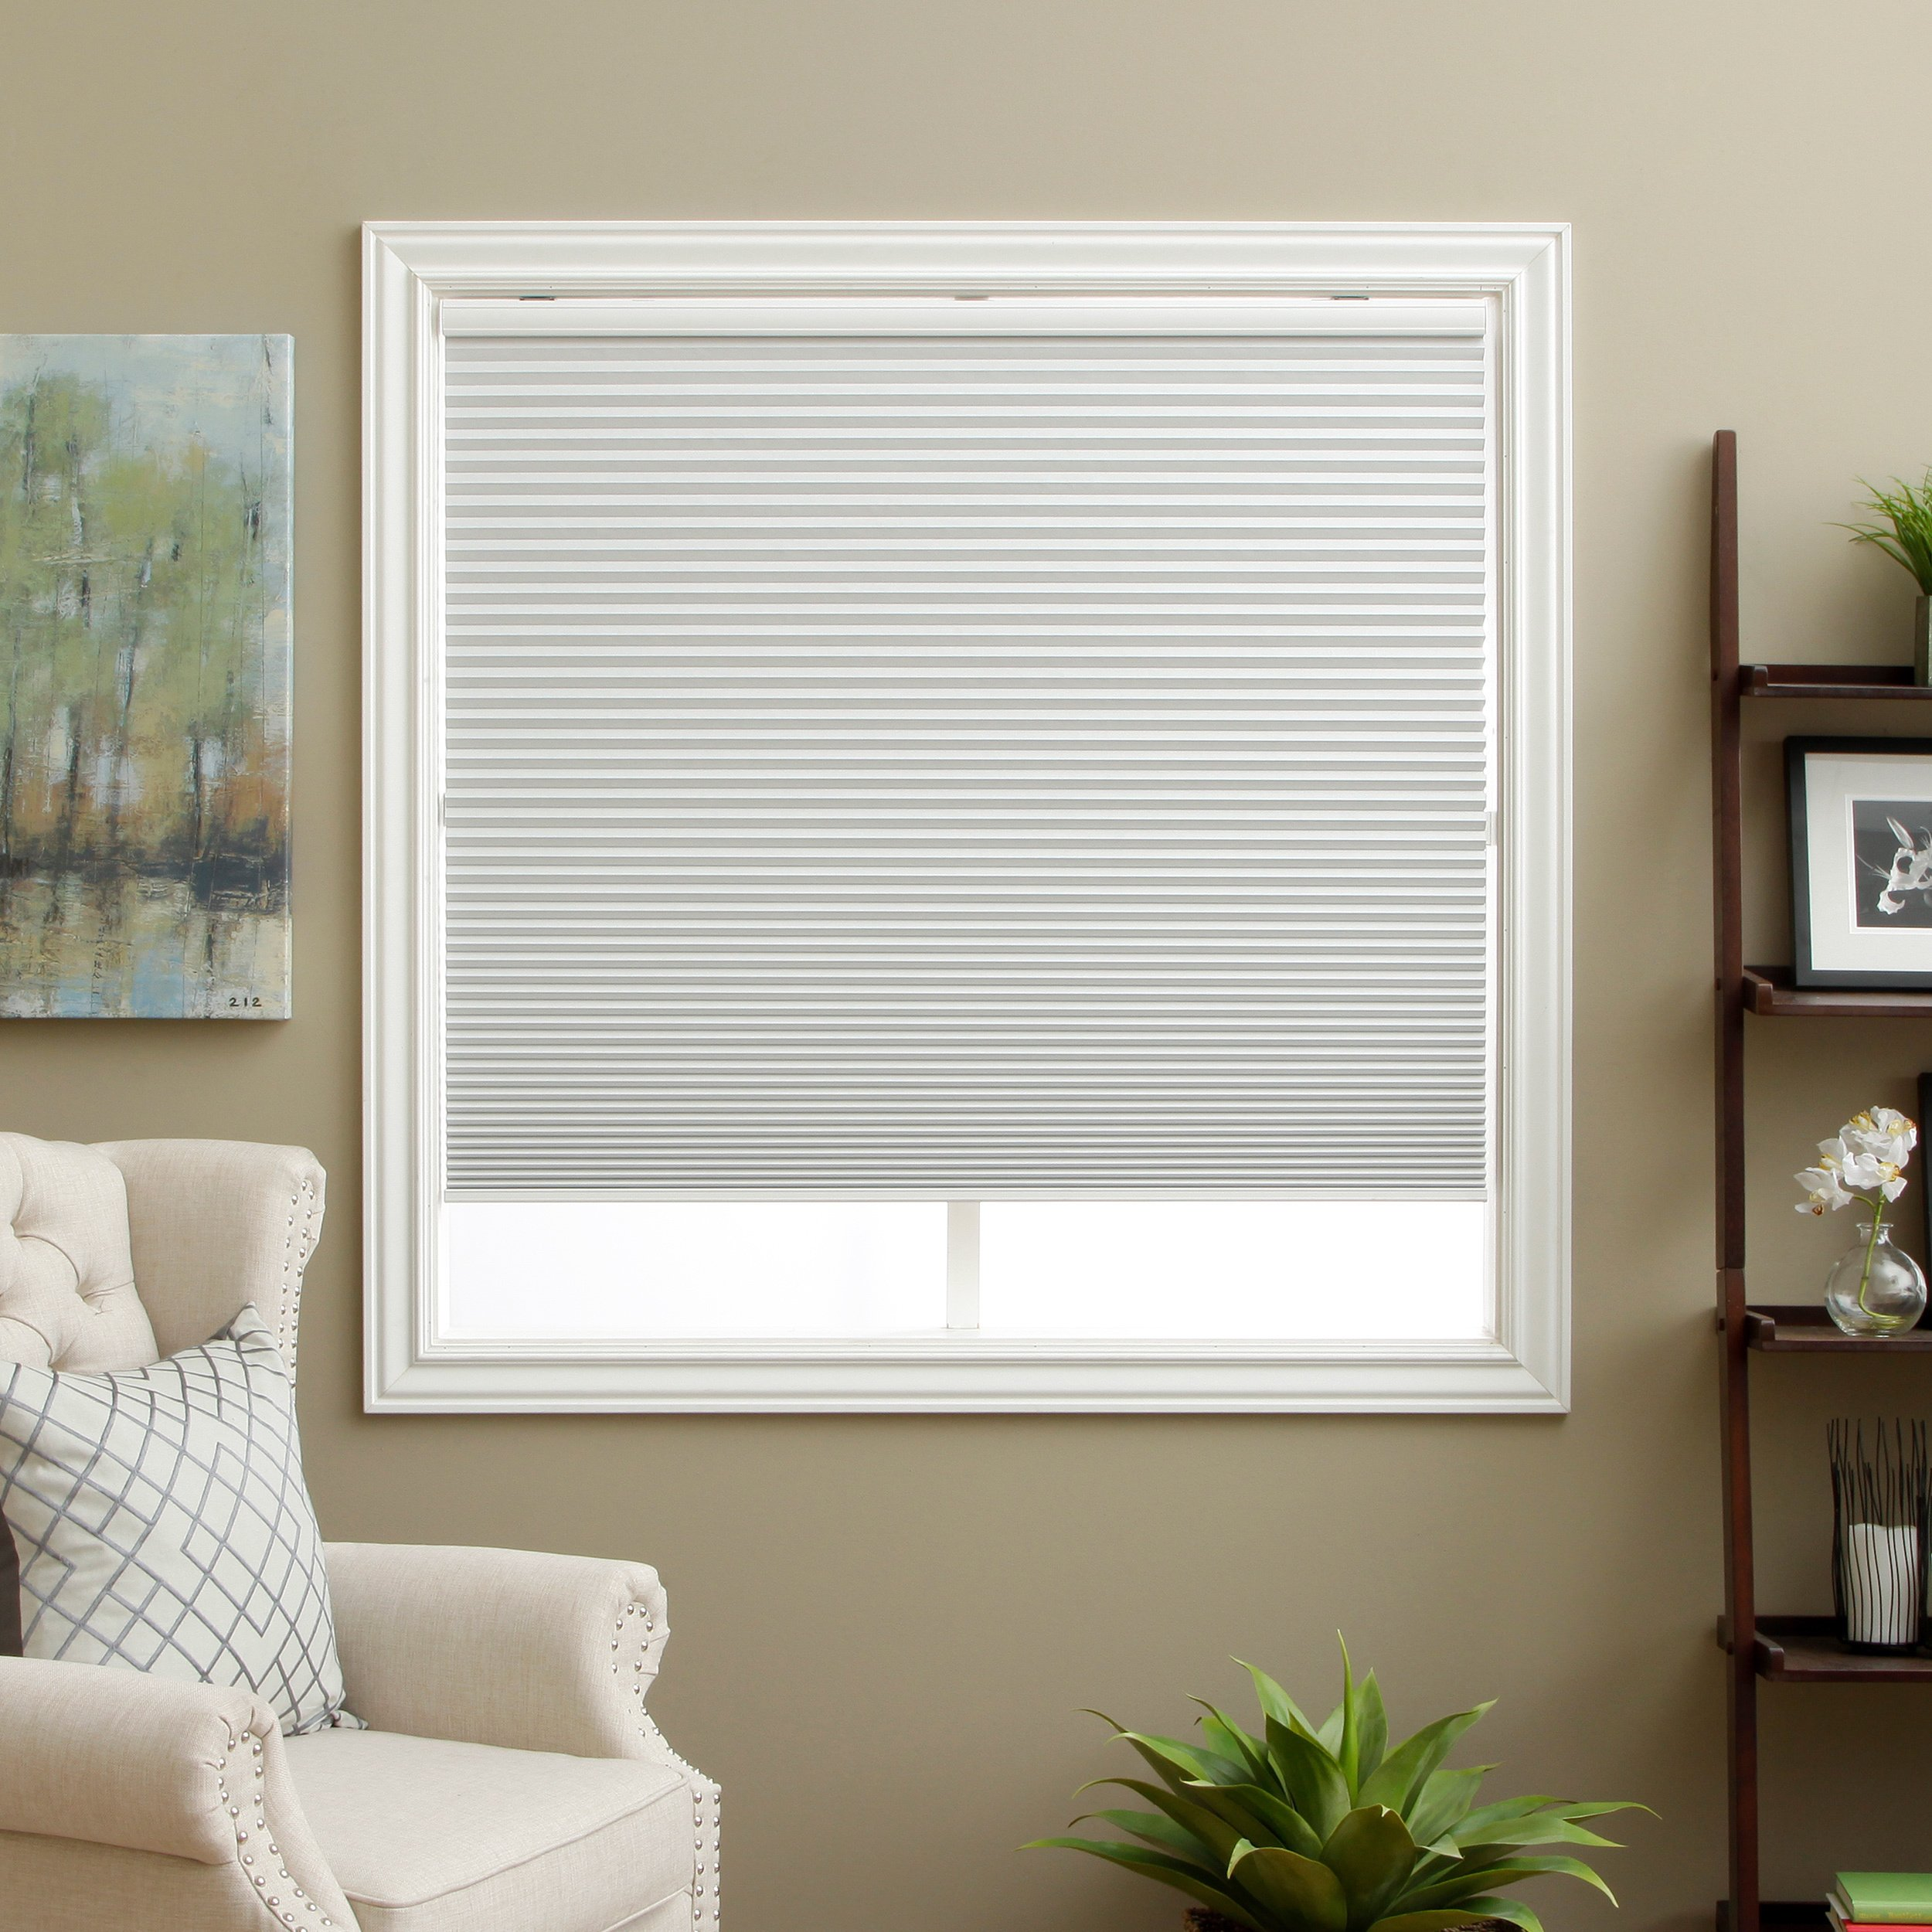 PH 1 Piece 40 W X 60 H Inches Off-White Blackout Blinds, Home Decor Light Filtering Cordless Cellular Shade, Includes Hardware, Horizontal Slat, Easy Match Window Treatments, Polyester Material